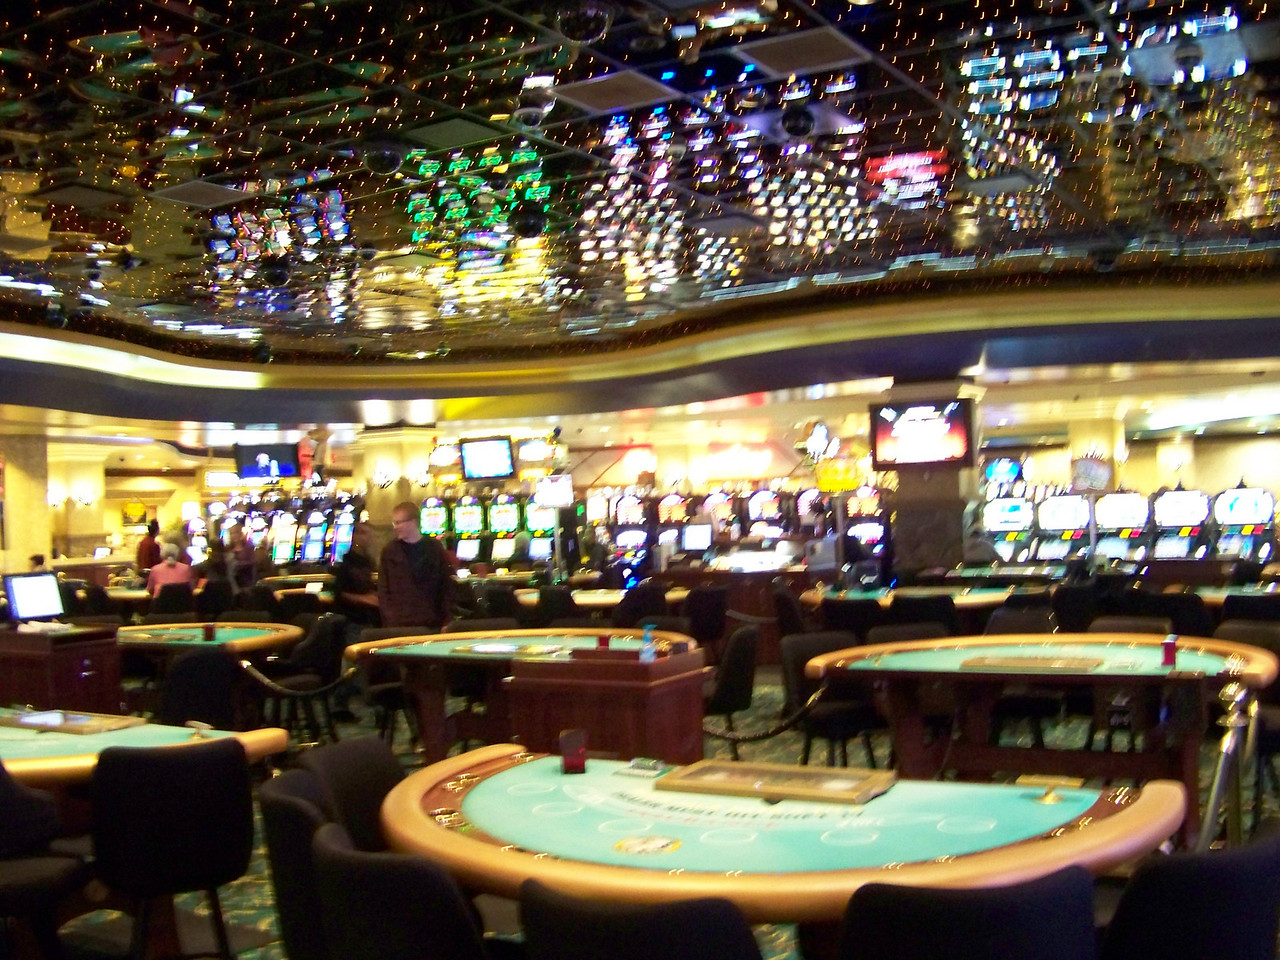 They also have lots of table games, including a single-deck blackjack game which we don't have in Washington.<br /> [Seven Feathers Resort in Canyonville, OR]